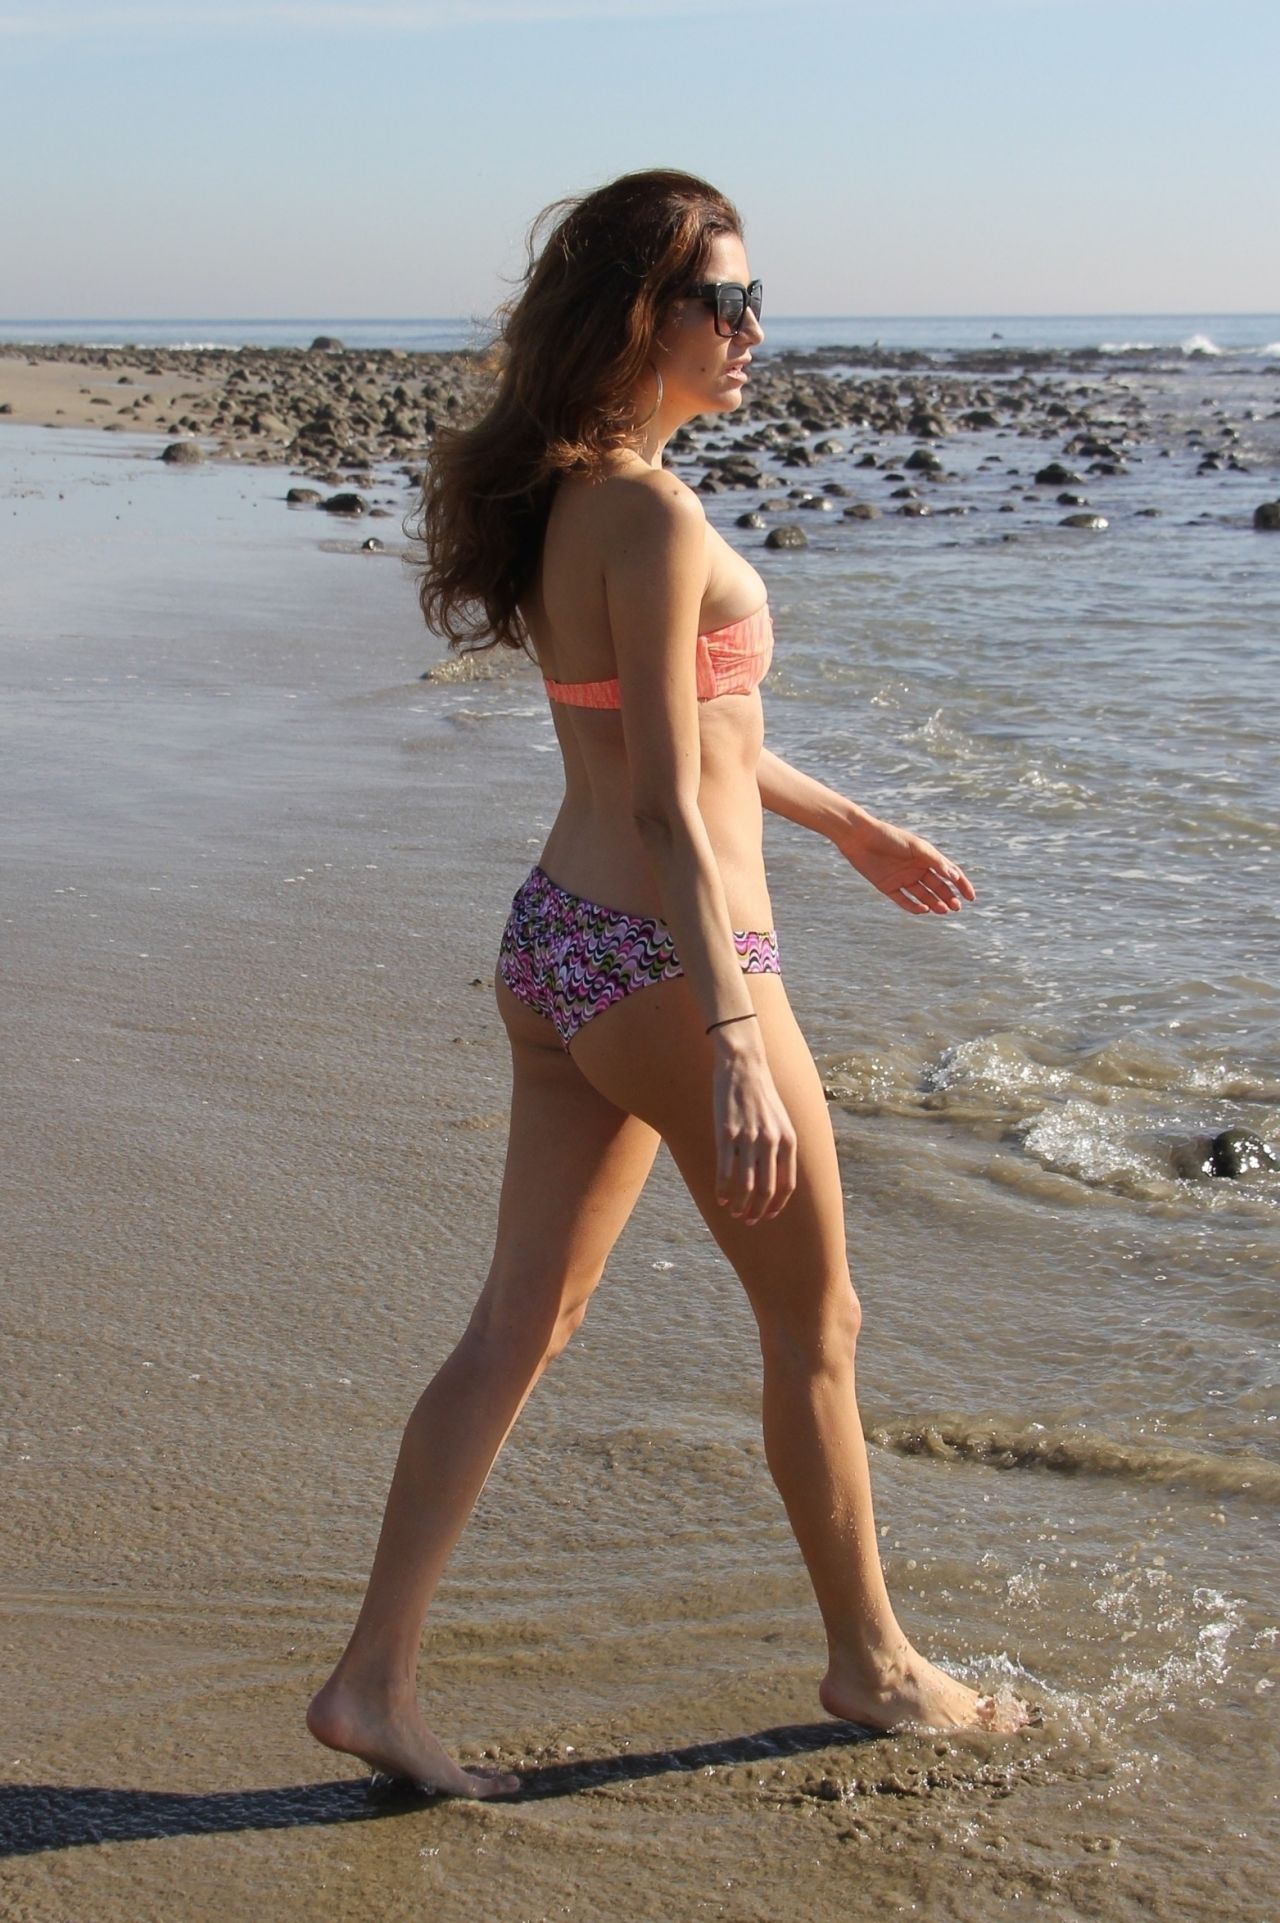 Blanca Blanco in Pink Bikini at the beach in Malibu Pic 35 of 35